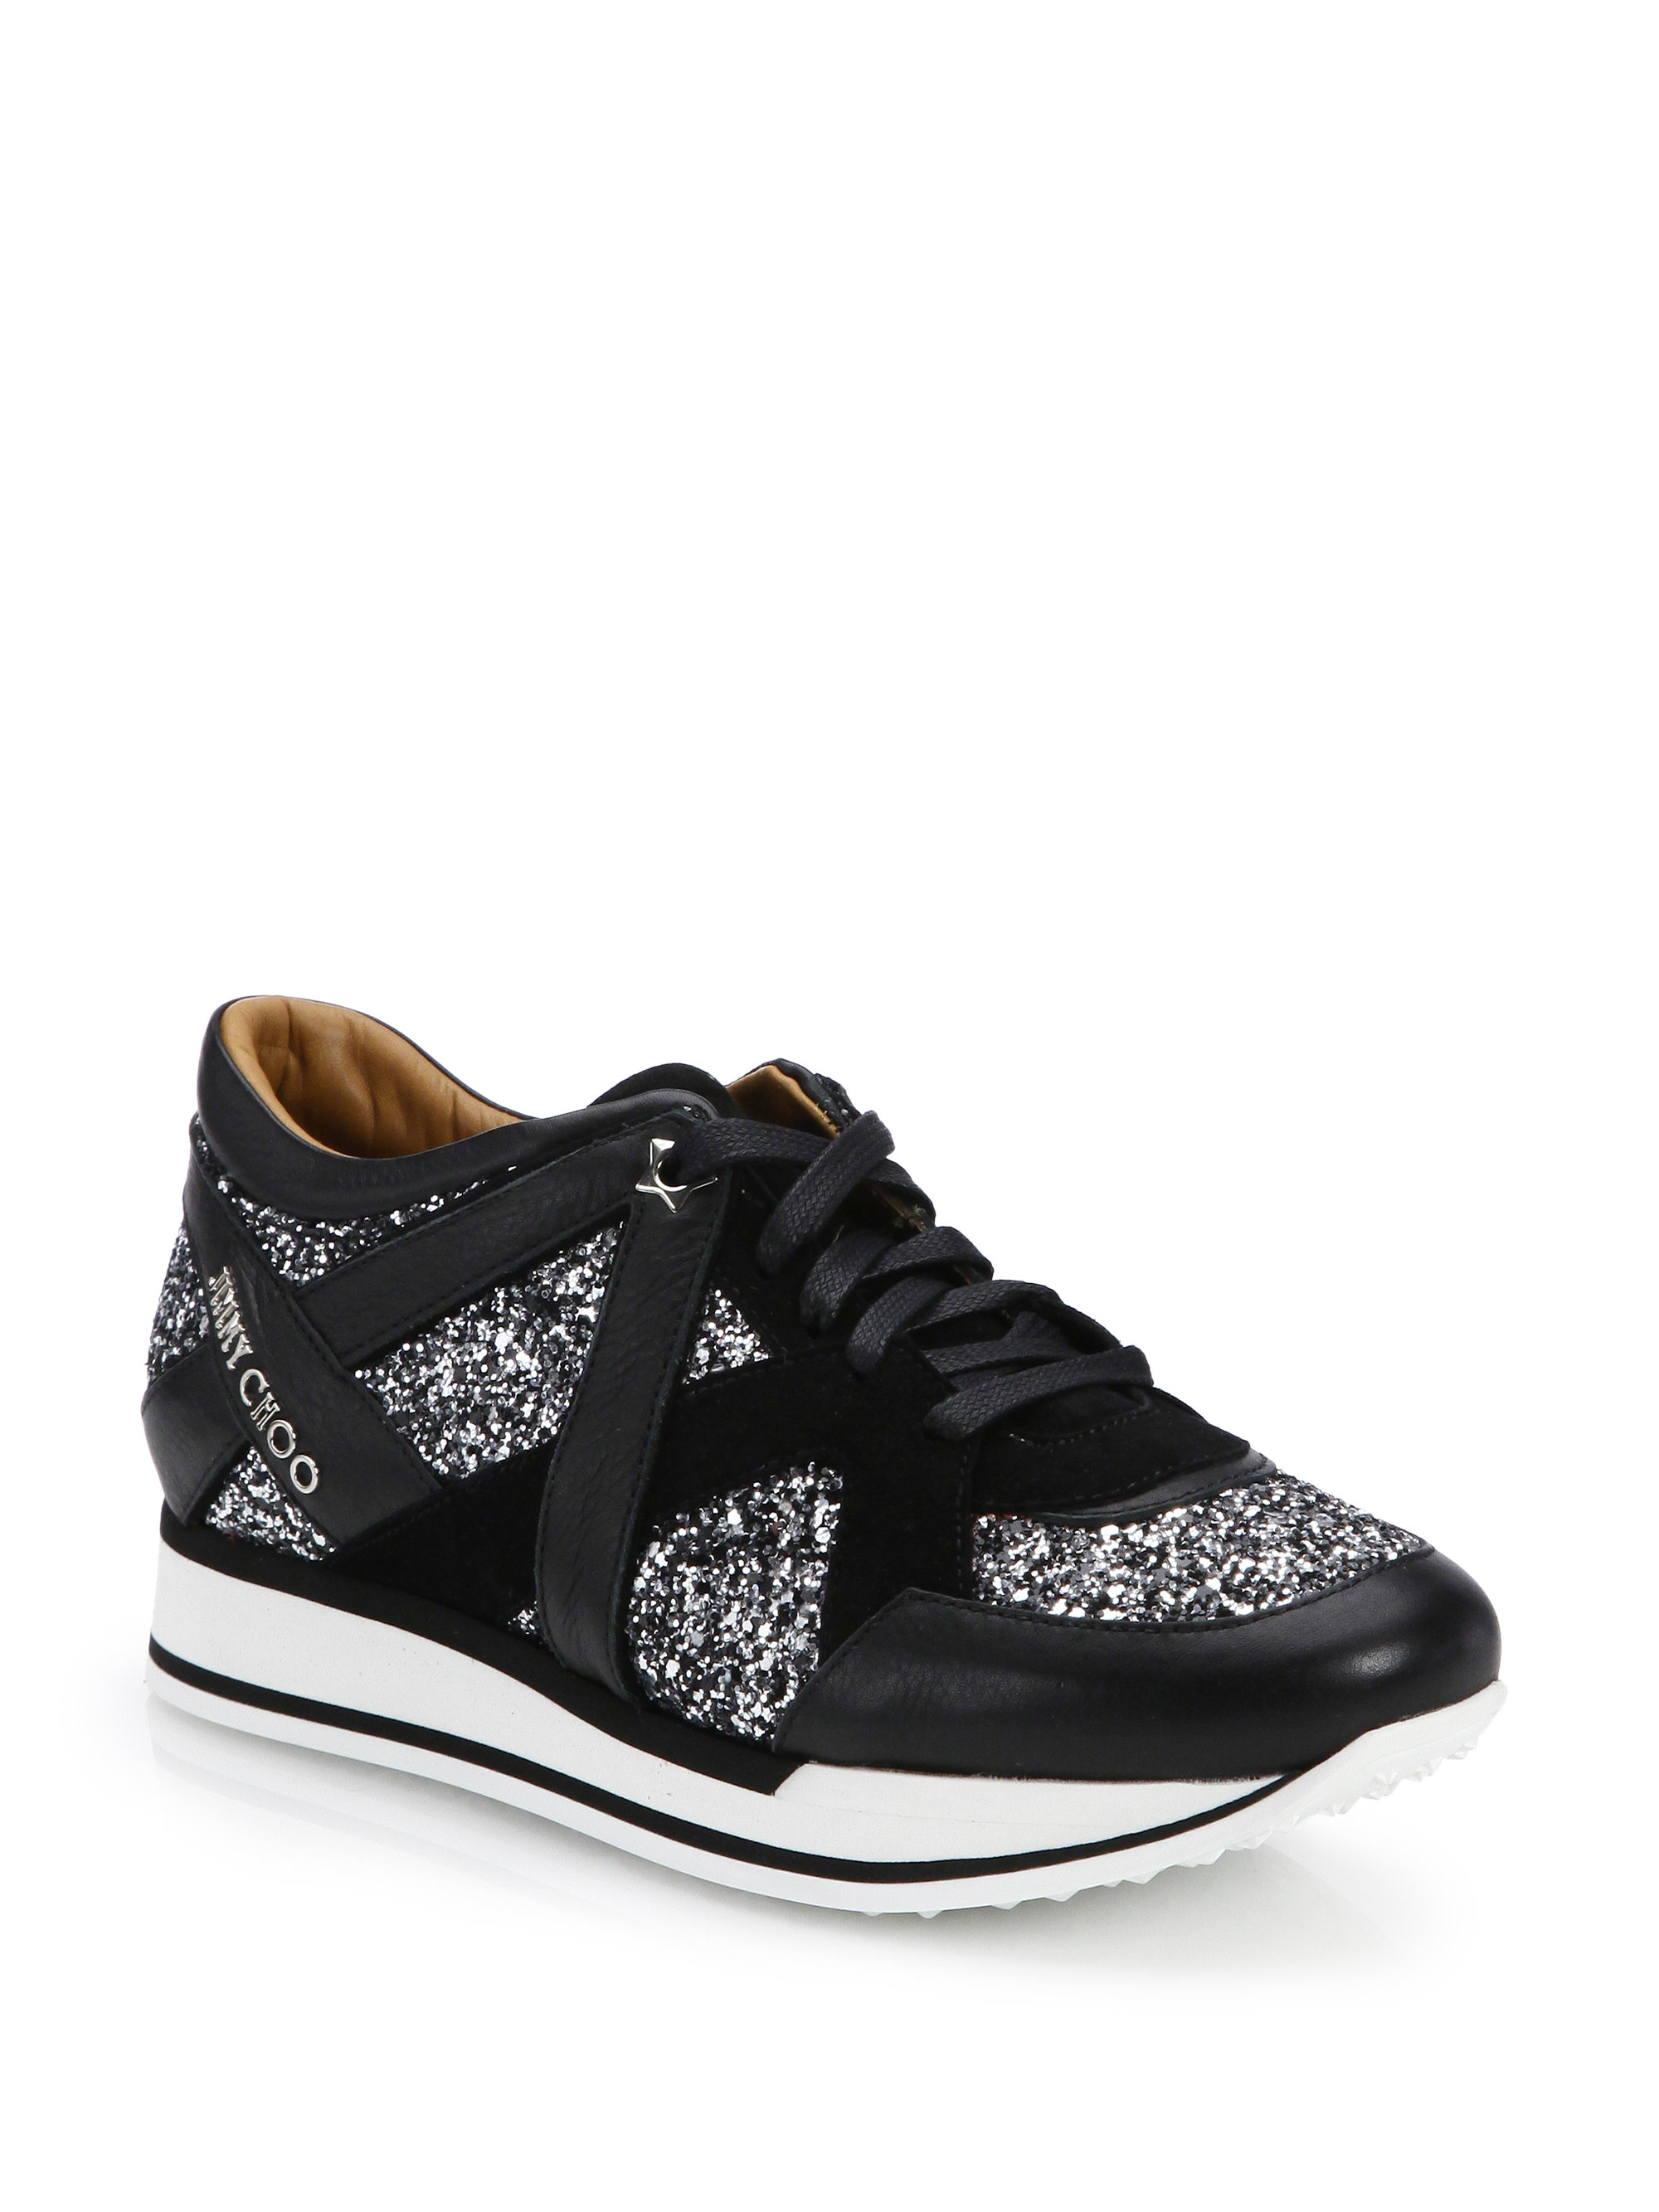 Miami leather and suede sneakers Jimmy Choo London jylcv